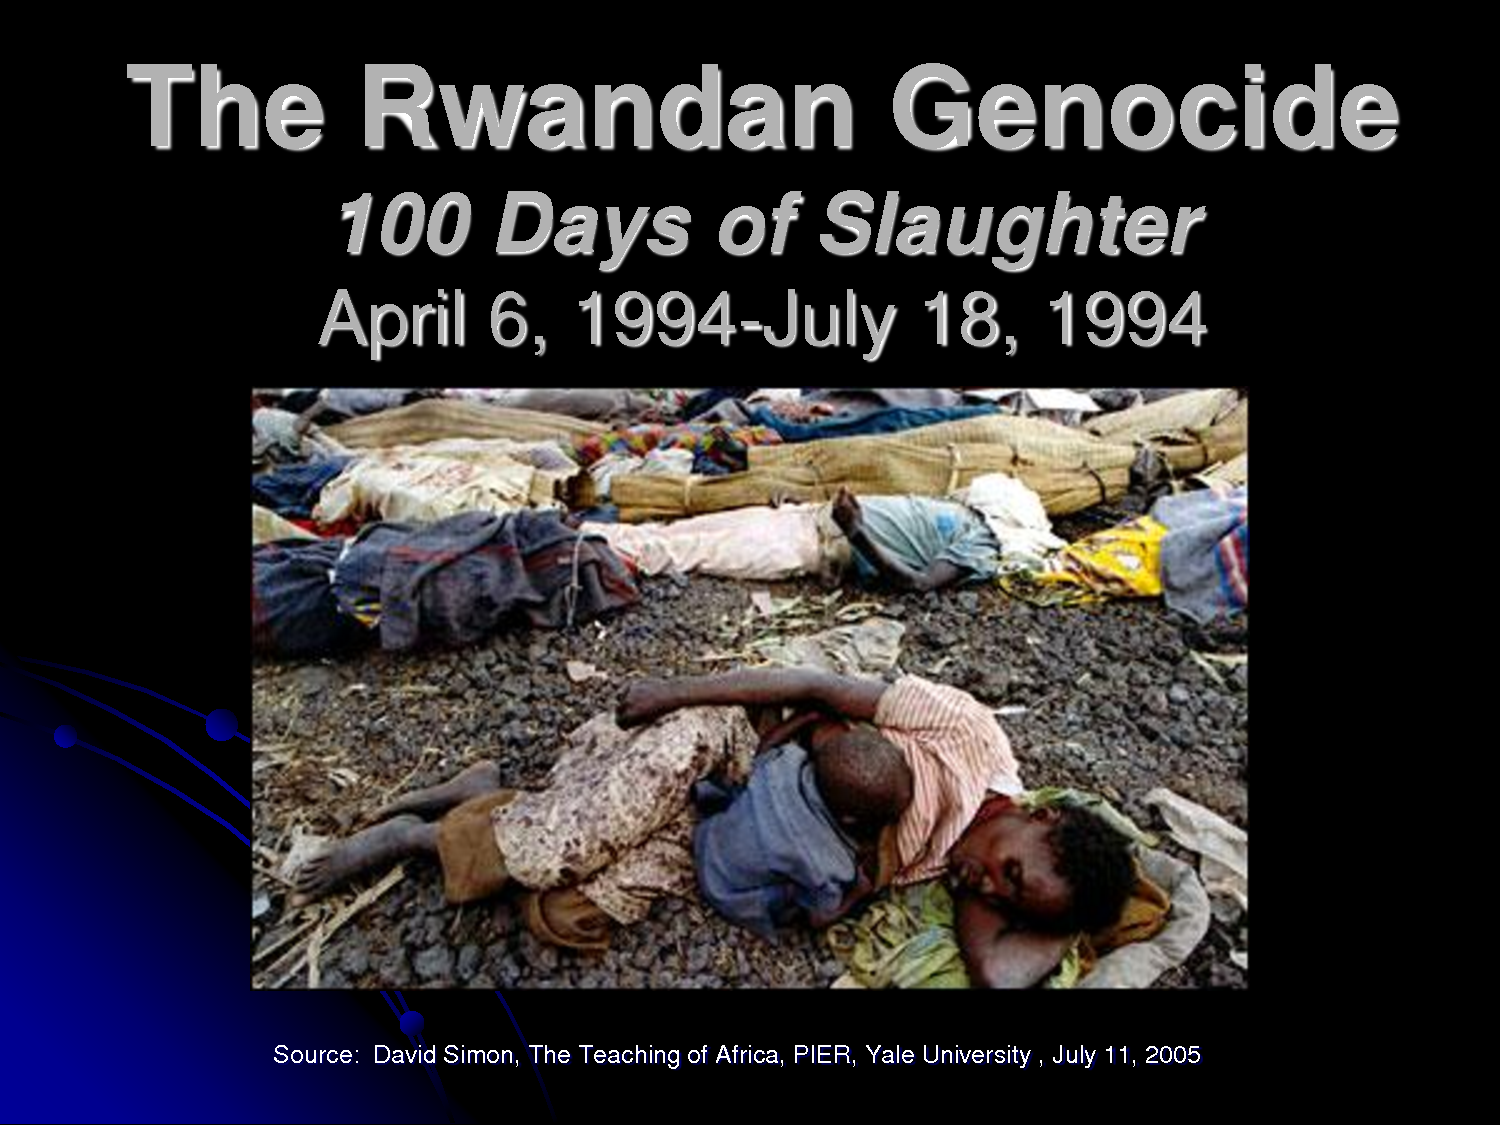 essay questions about rwanda genocide